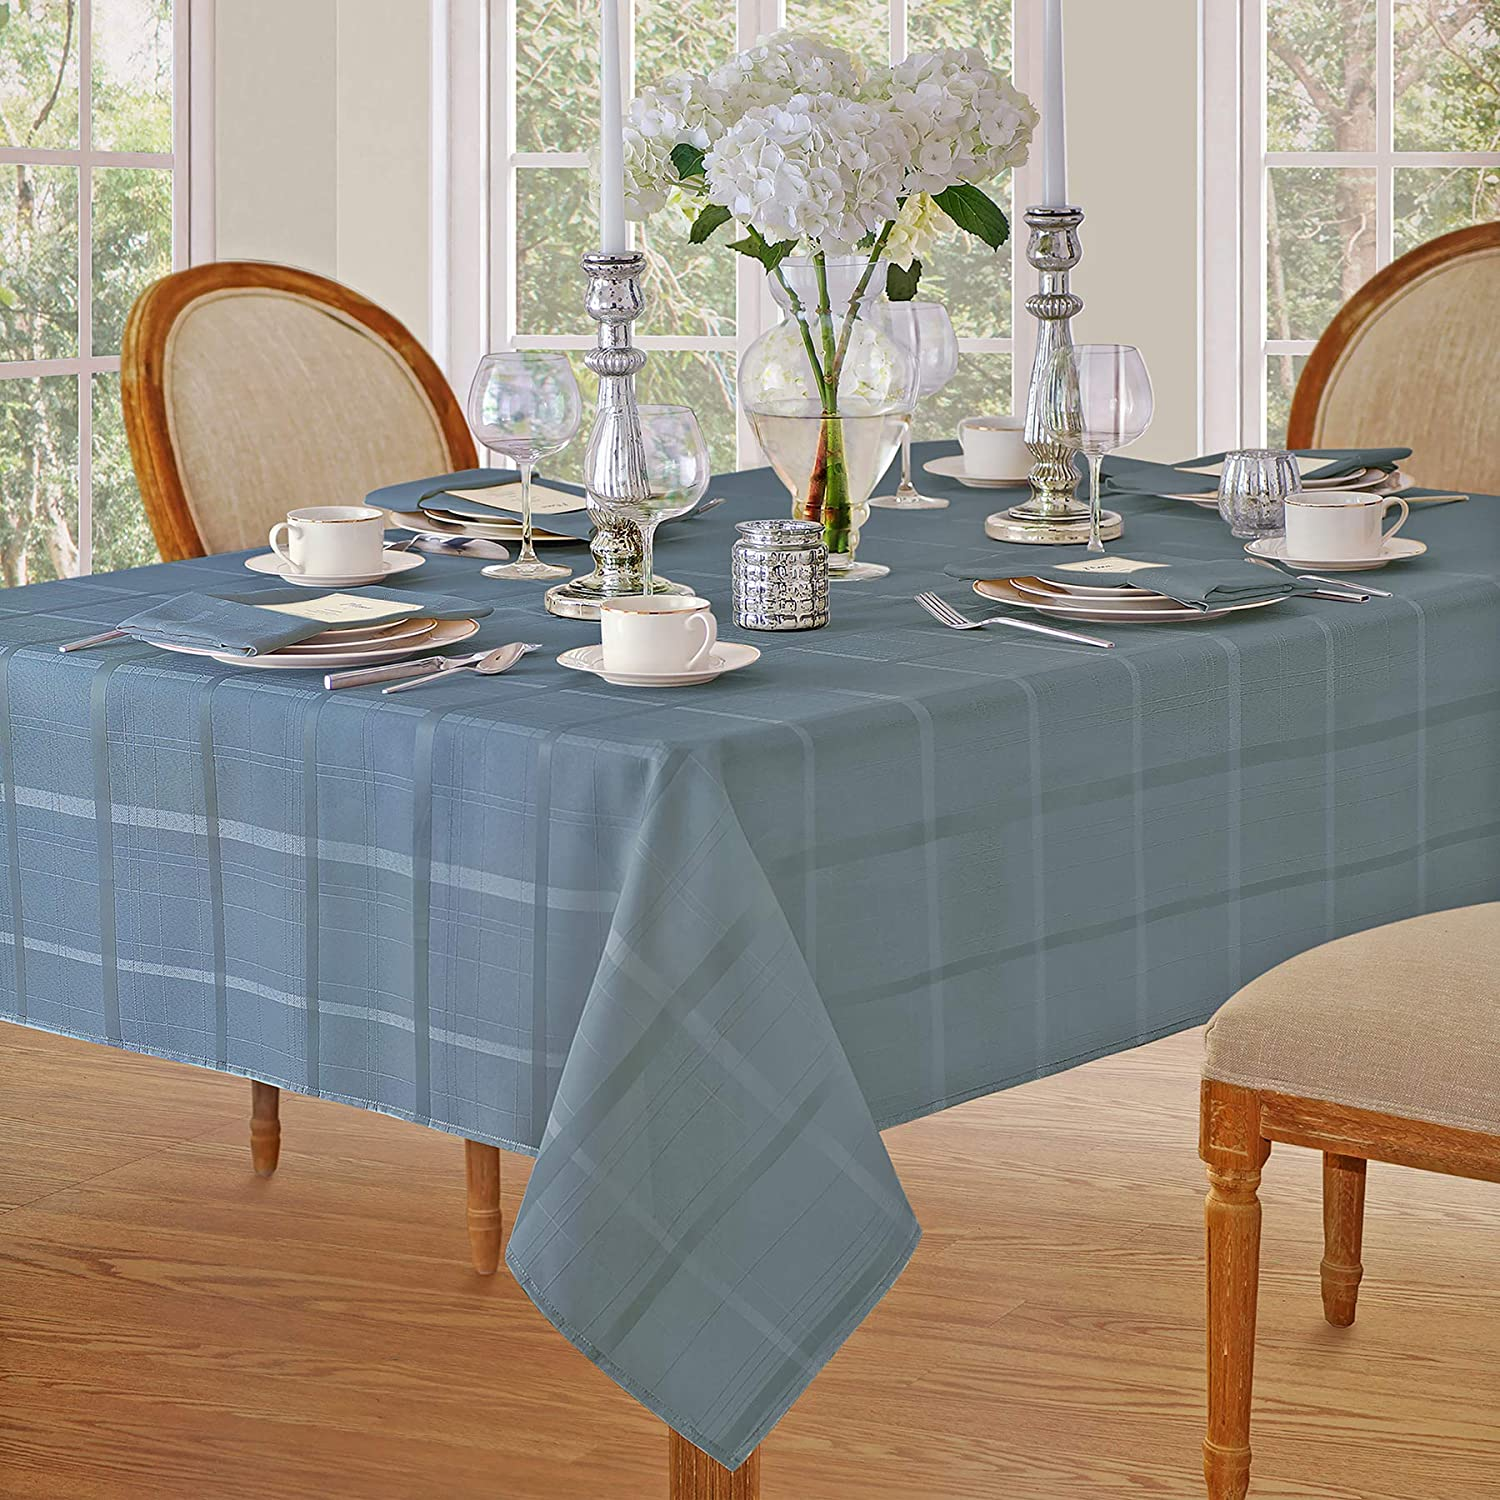 Newbridge Elegance Plaid Christmas Fabric Tablecloth, 100% Polyester, No Iron, Soil Resistant Holiday Tablecloth, 60 Inch x 84 Inch Oblong/Rectangle, Shadow Blue